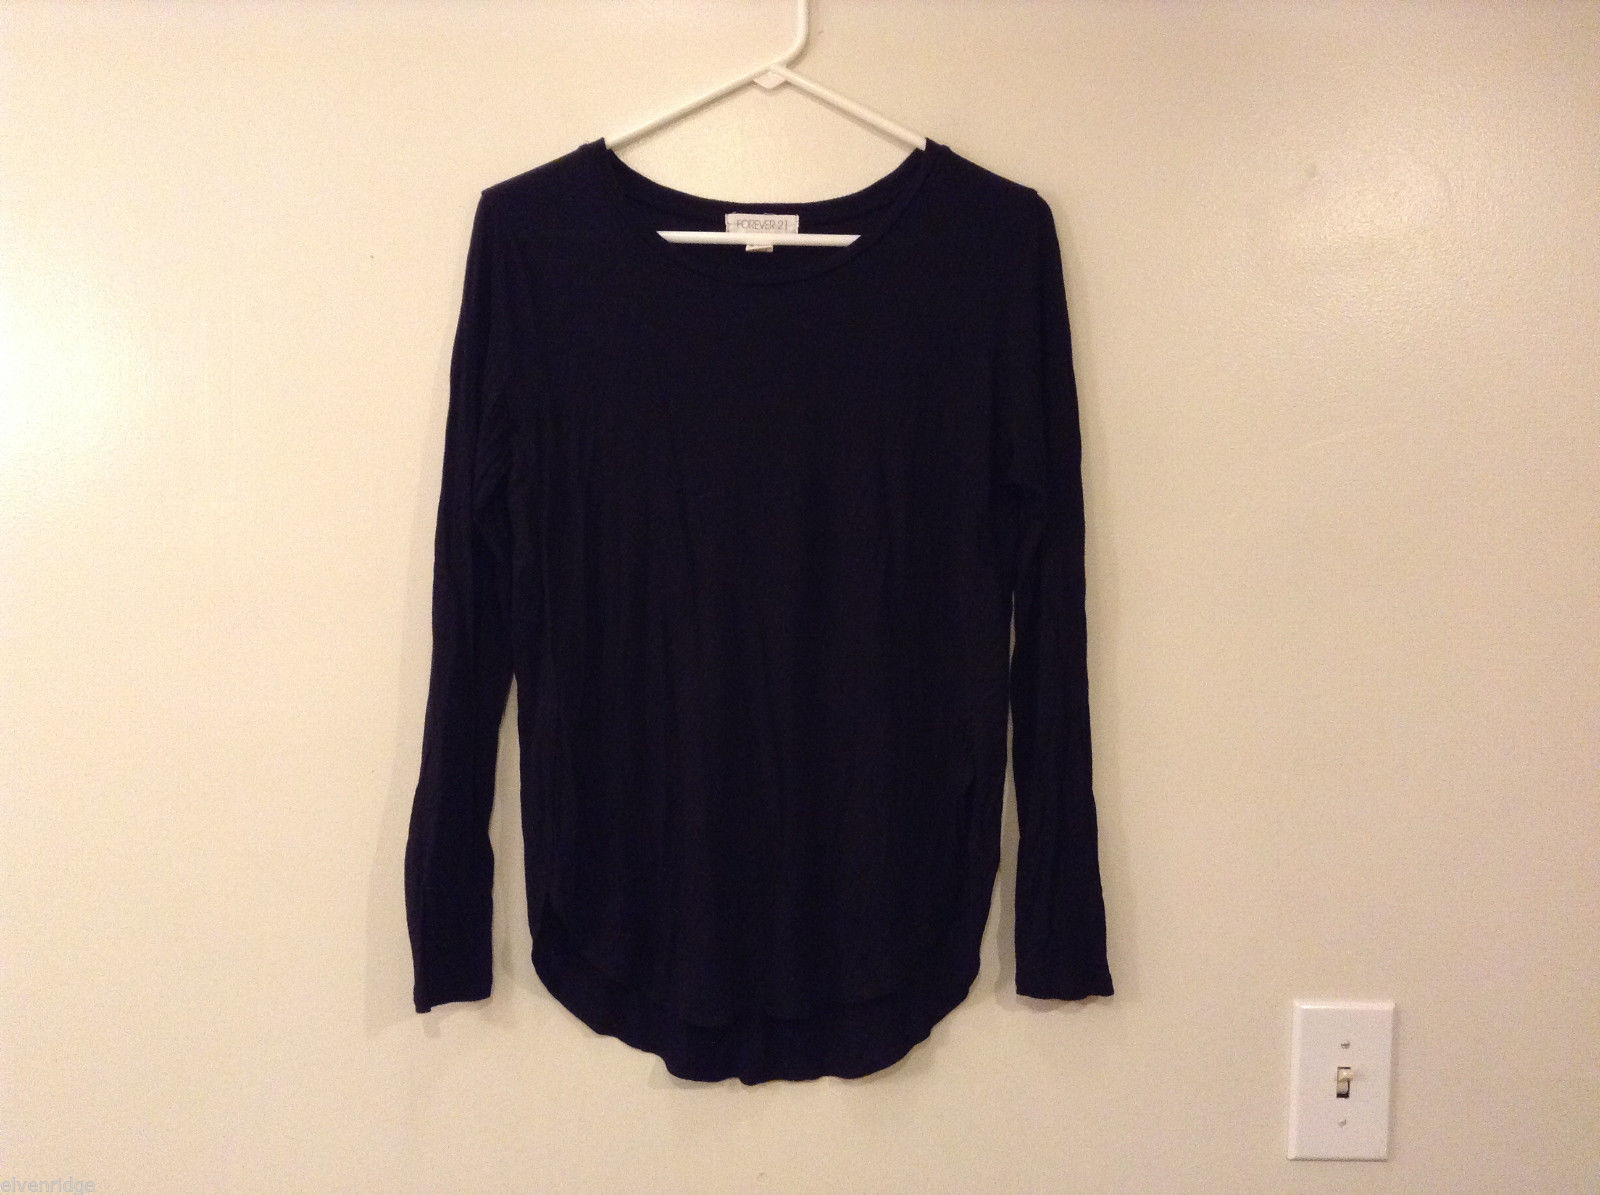 Forever 21 Black Rayon Spandex Long Sleeve T-Shirt Blouse, Size L